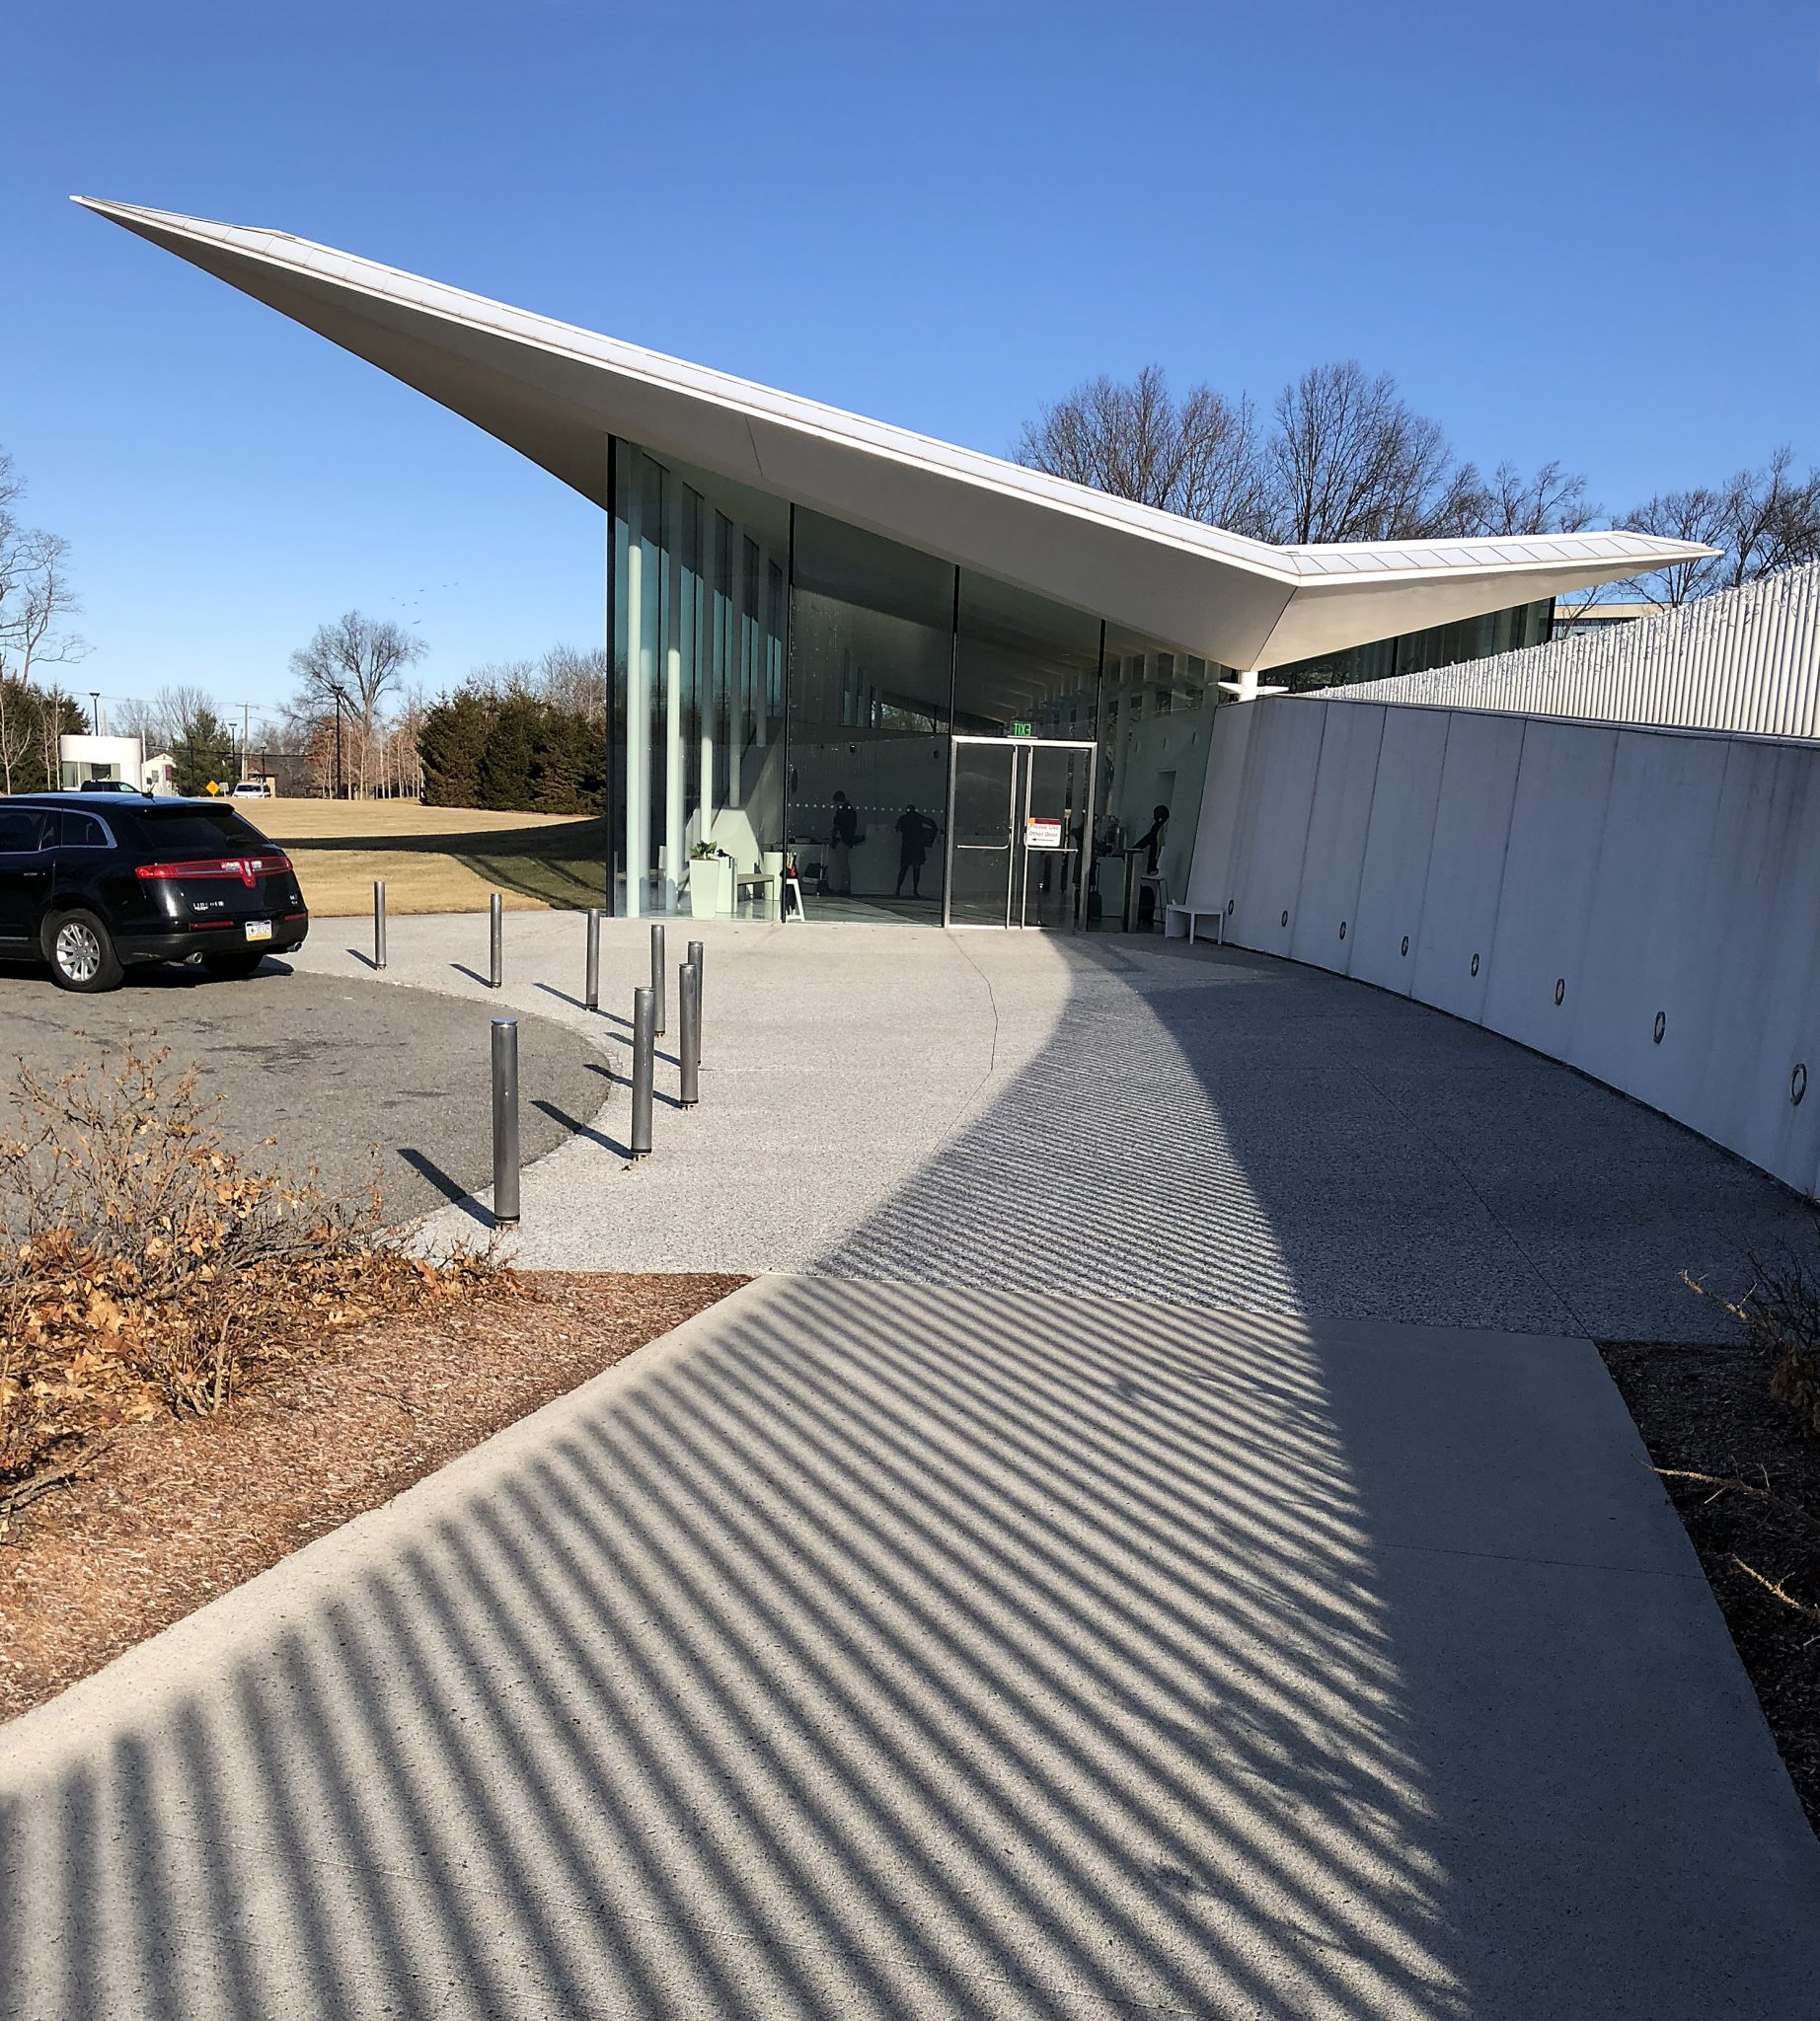 front of Novartis Visitor Center building with soaring white wedge and fencing shadows on sidewalk